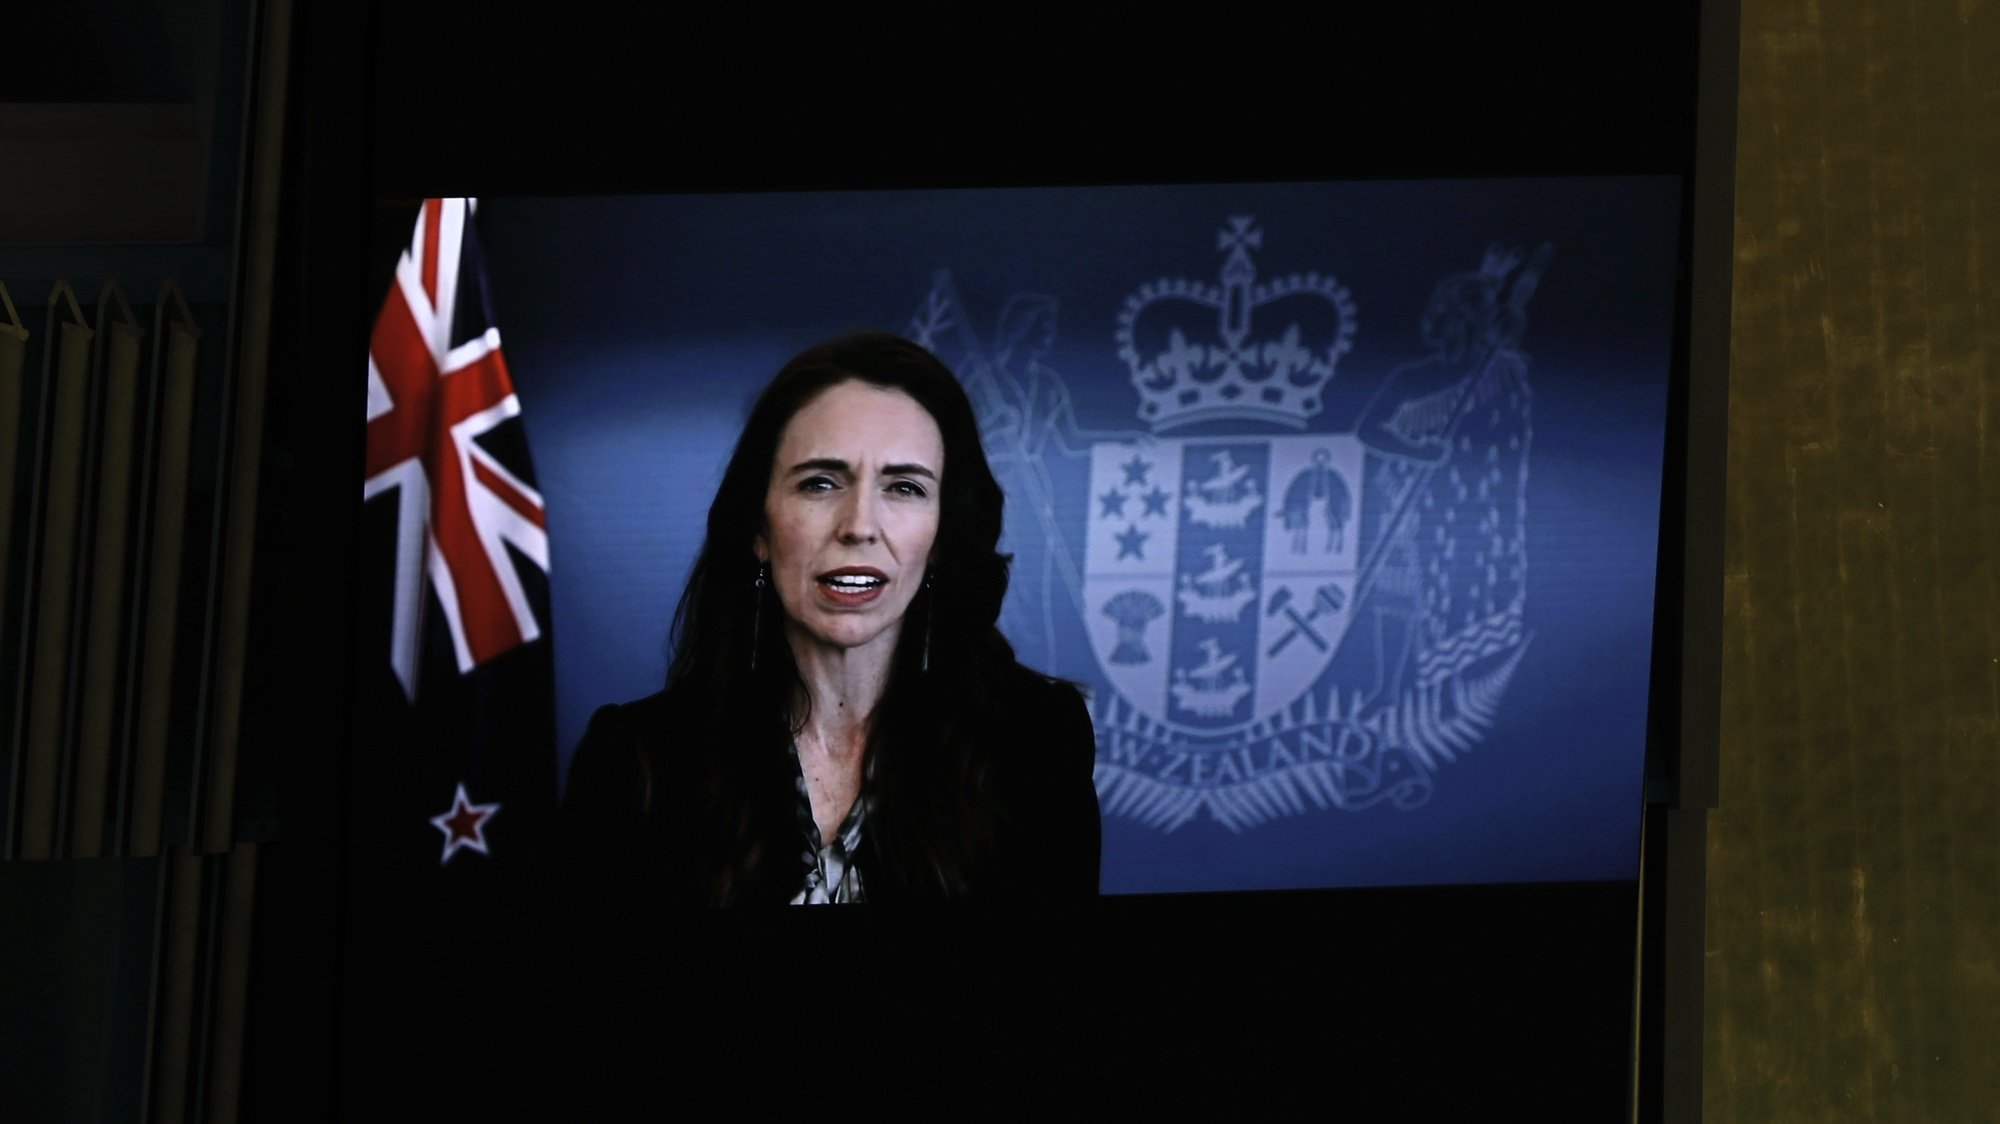 epa09486458 Prime Minister of New Zealand, Jacinda Ardern addresses, via prerecorded video, the General Debate of the 76th Session of the United Nations General Assembly at UN Headquarters in New York, New York, USA, 24 September 2021.  EPA/PETER FOLEY